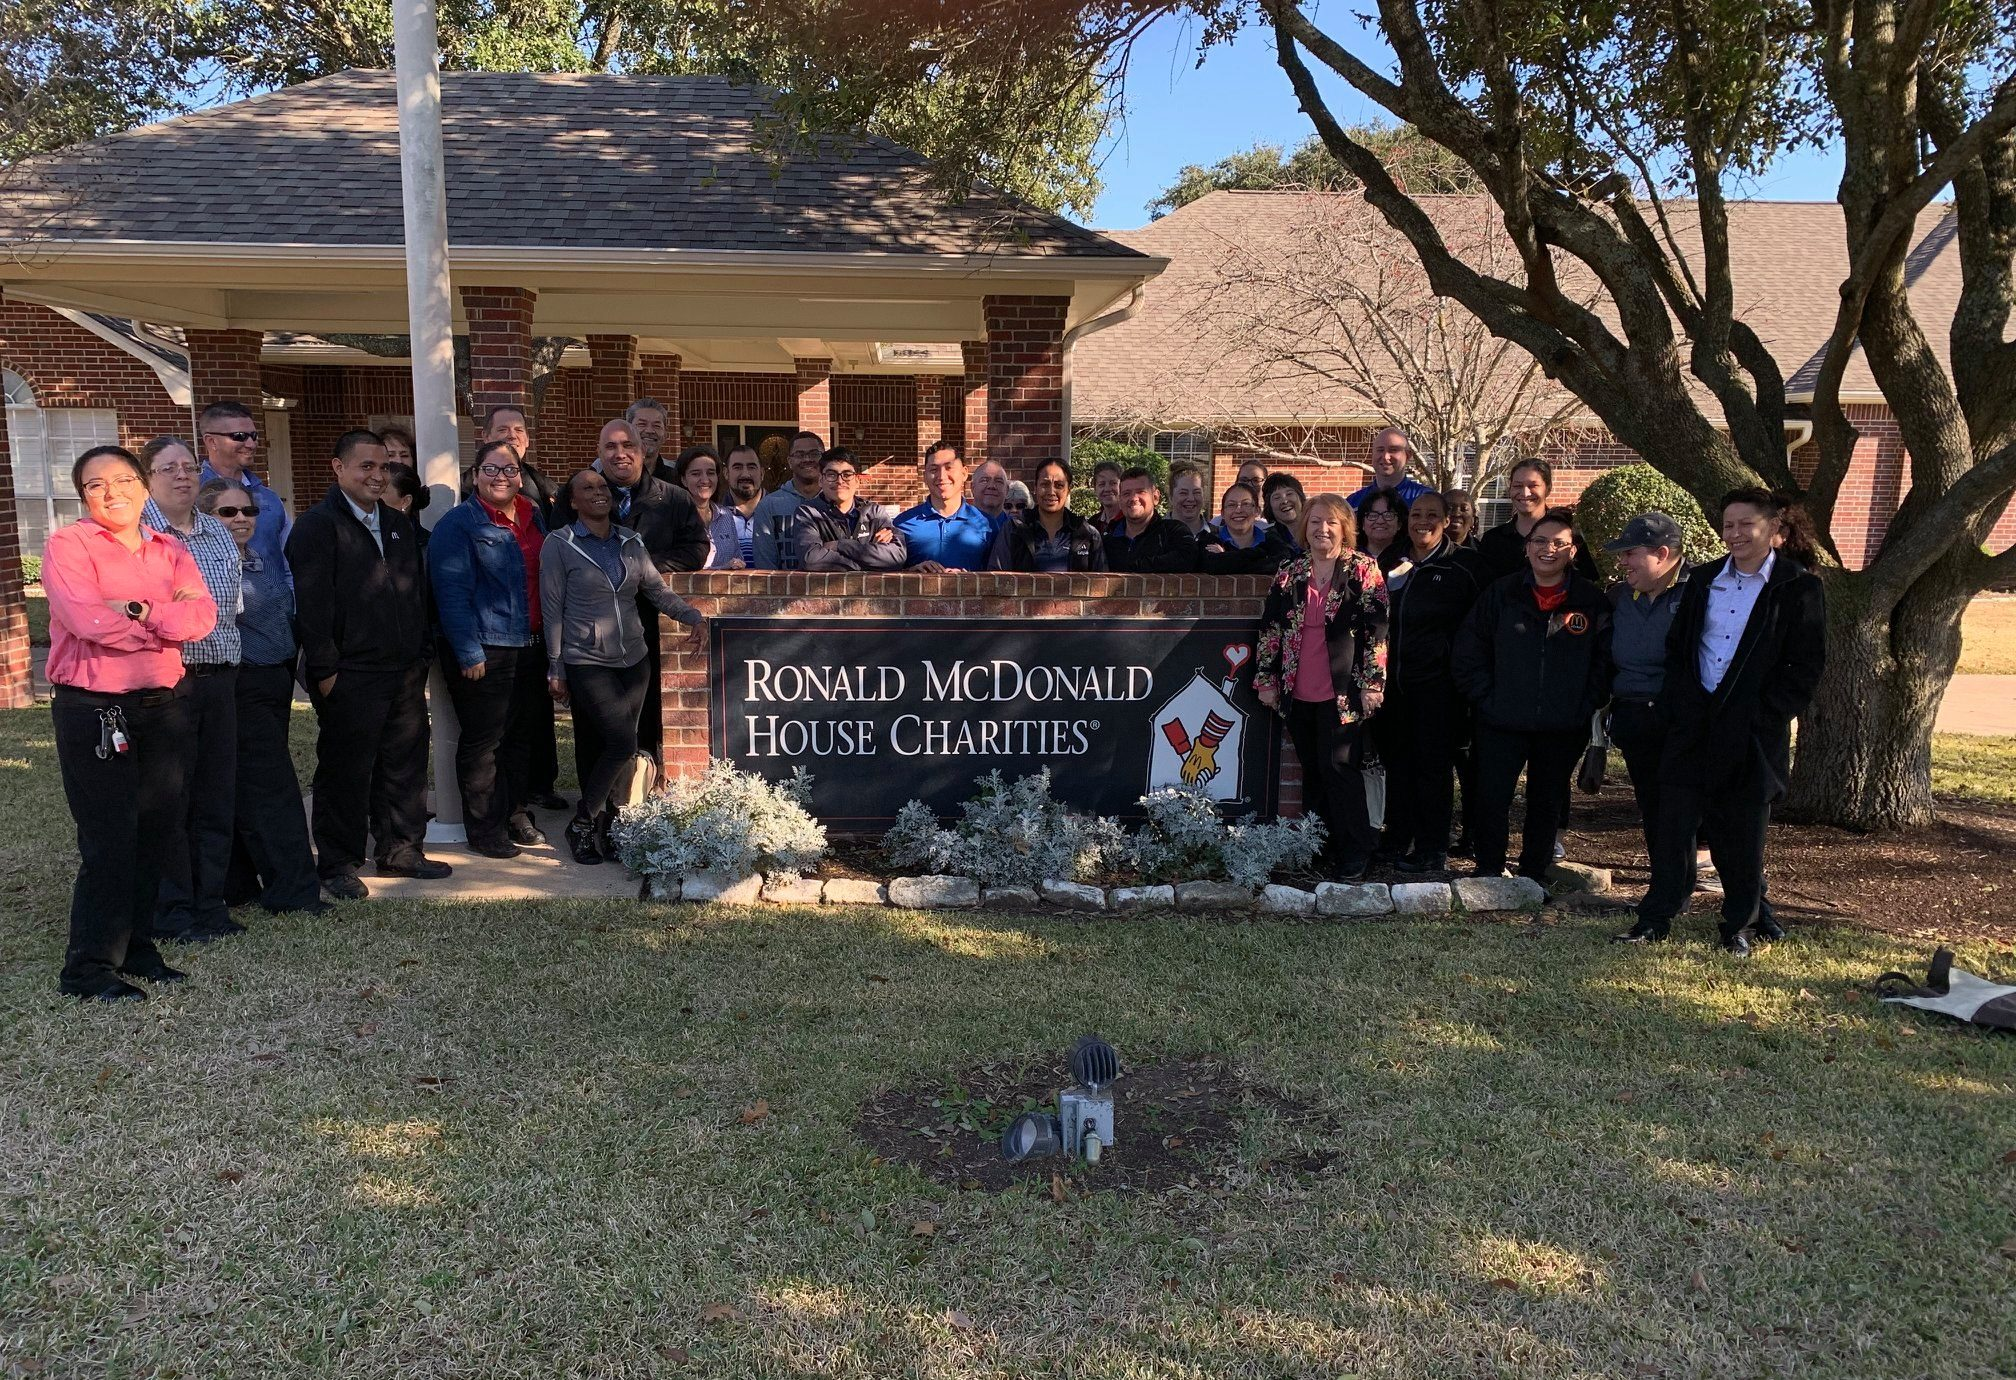 Ronald McDonalds House Charities Temple Texas Pest Control GGA Pest Management